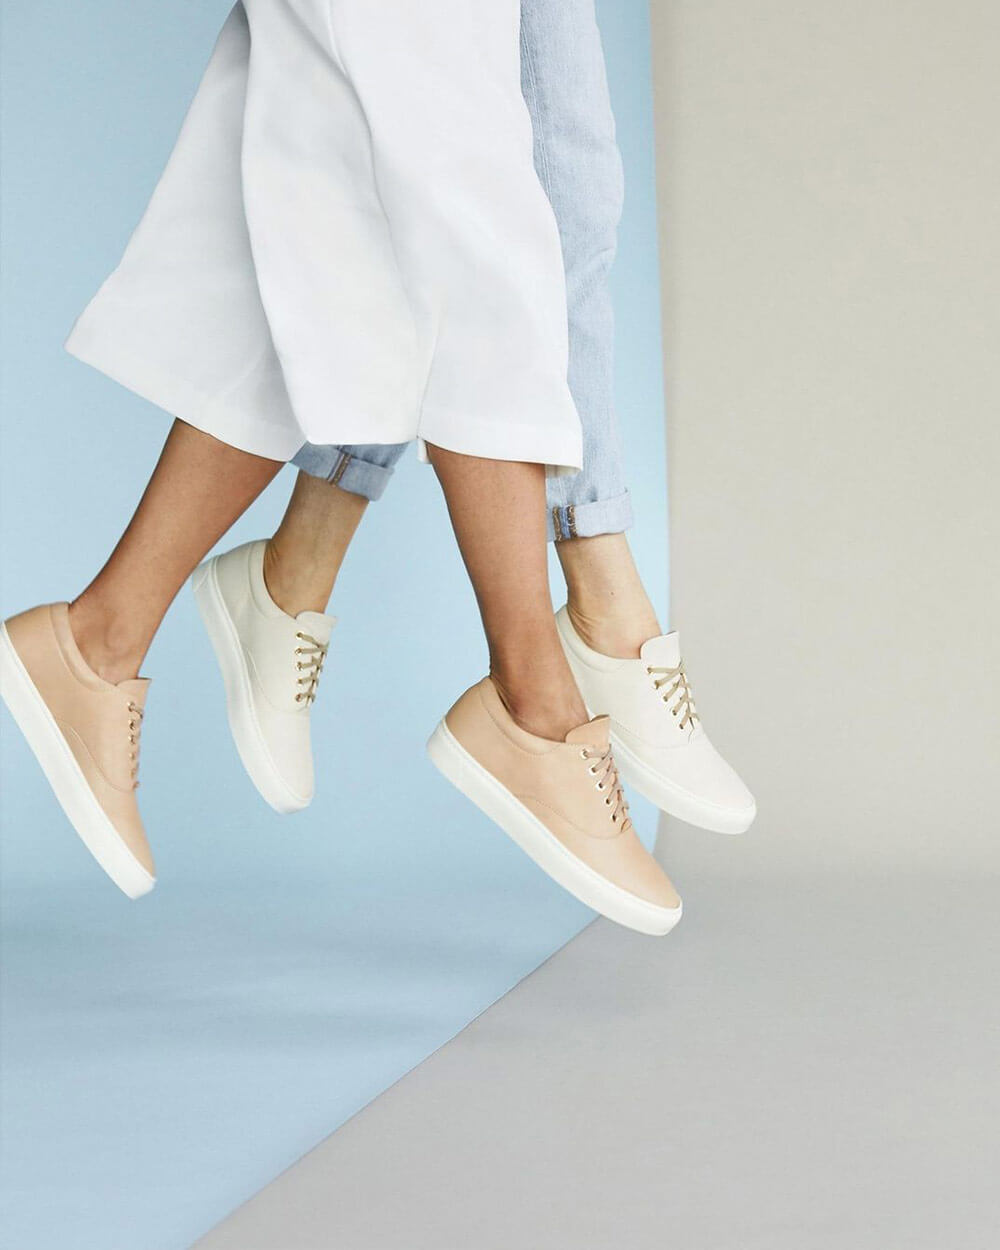 Nisolo sustainable sneakers